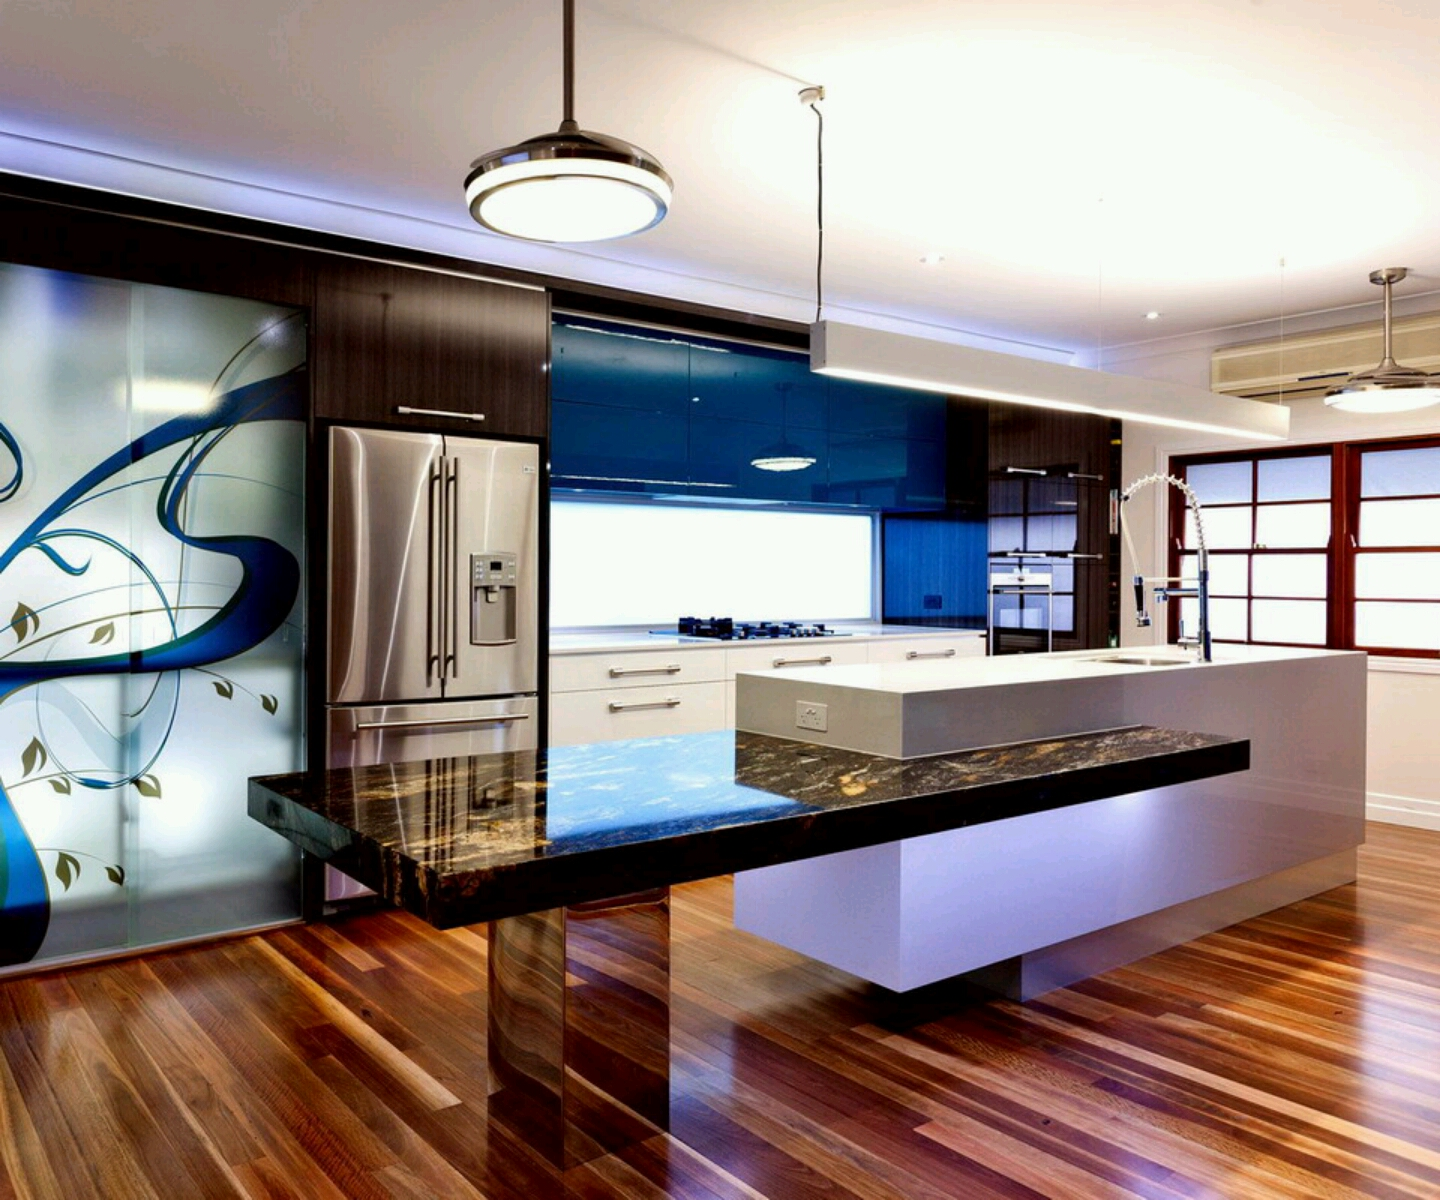 Ultra modern kitchen designs ideas new home designs for Latest home kitchen designs